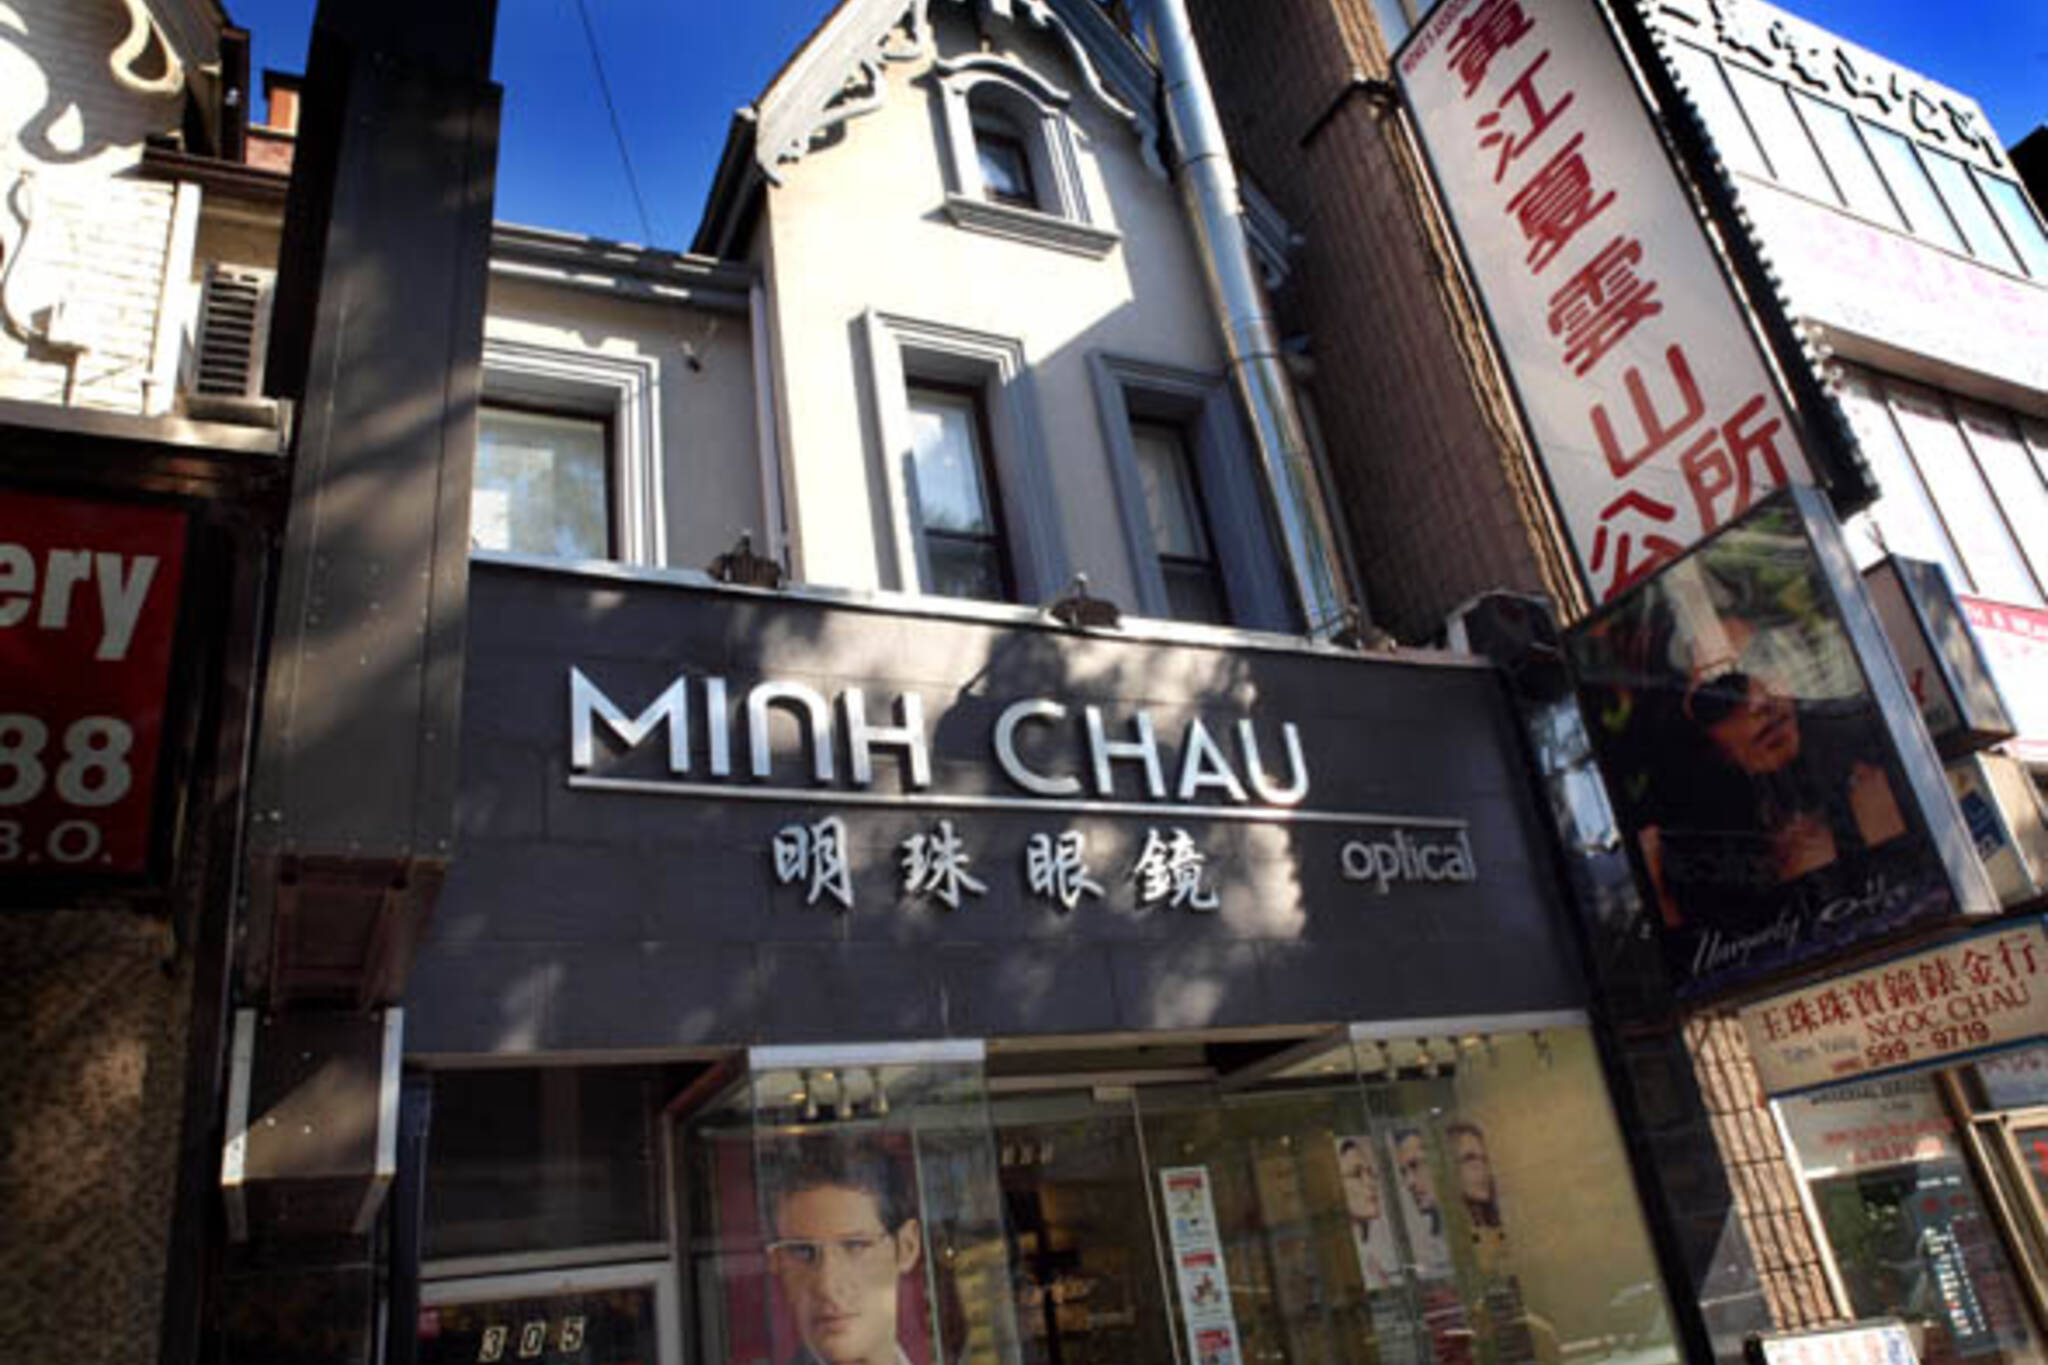 Minh Chau Optical